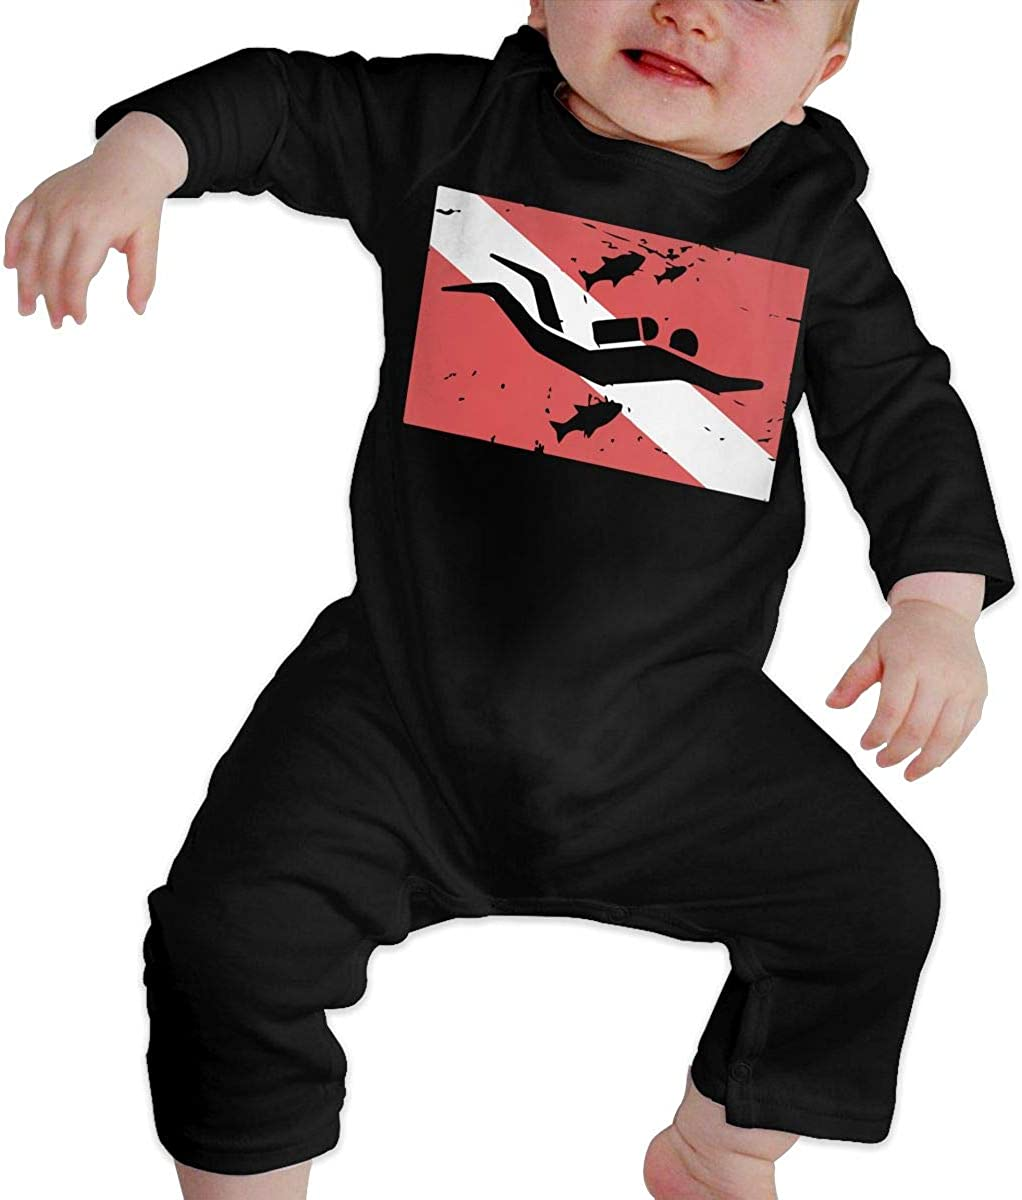 YELTY6F Scuba Dive Flag Printed Newborn Infant Baby Boy Girl One-Piece Suit Long Sleeve Outfits Black